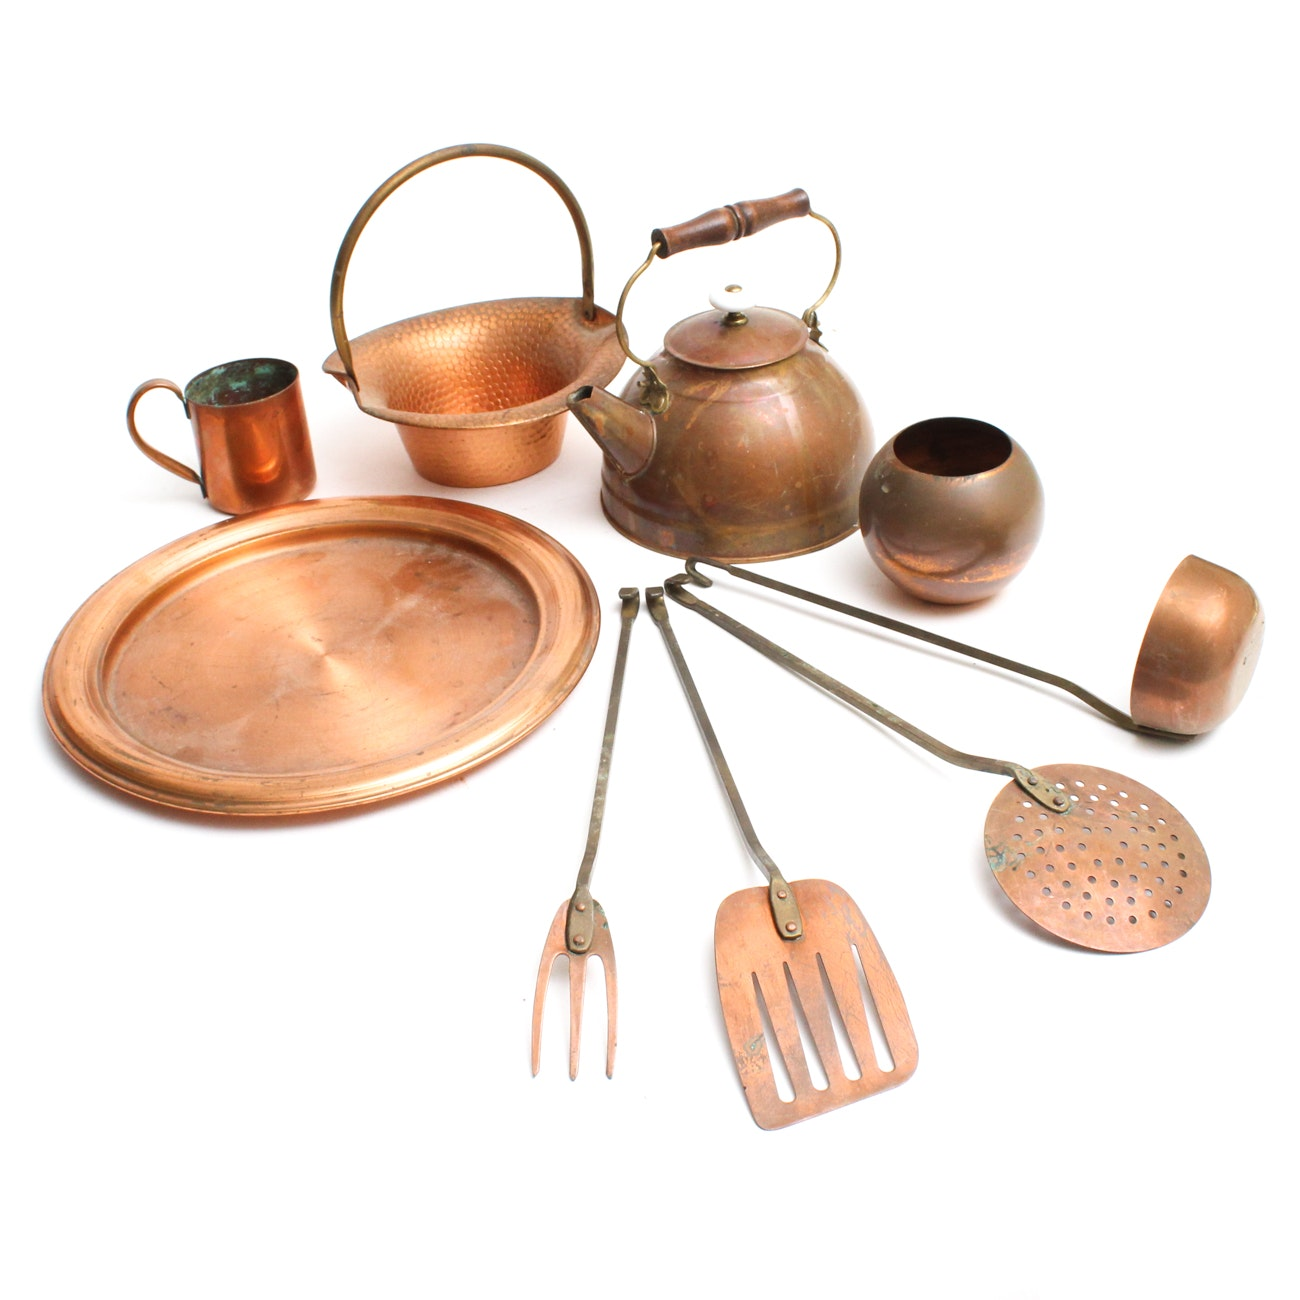 Vintage Copper Pots, Utensils and Serveware